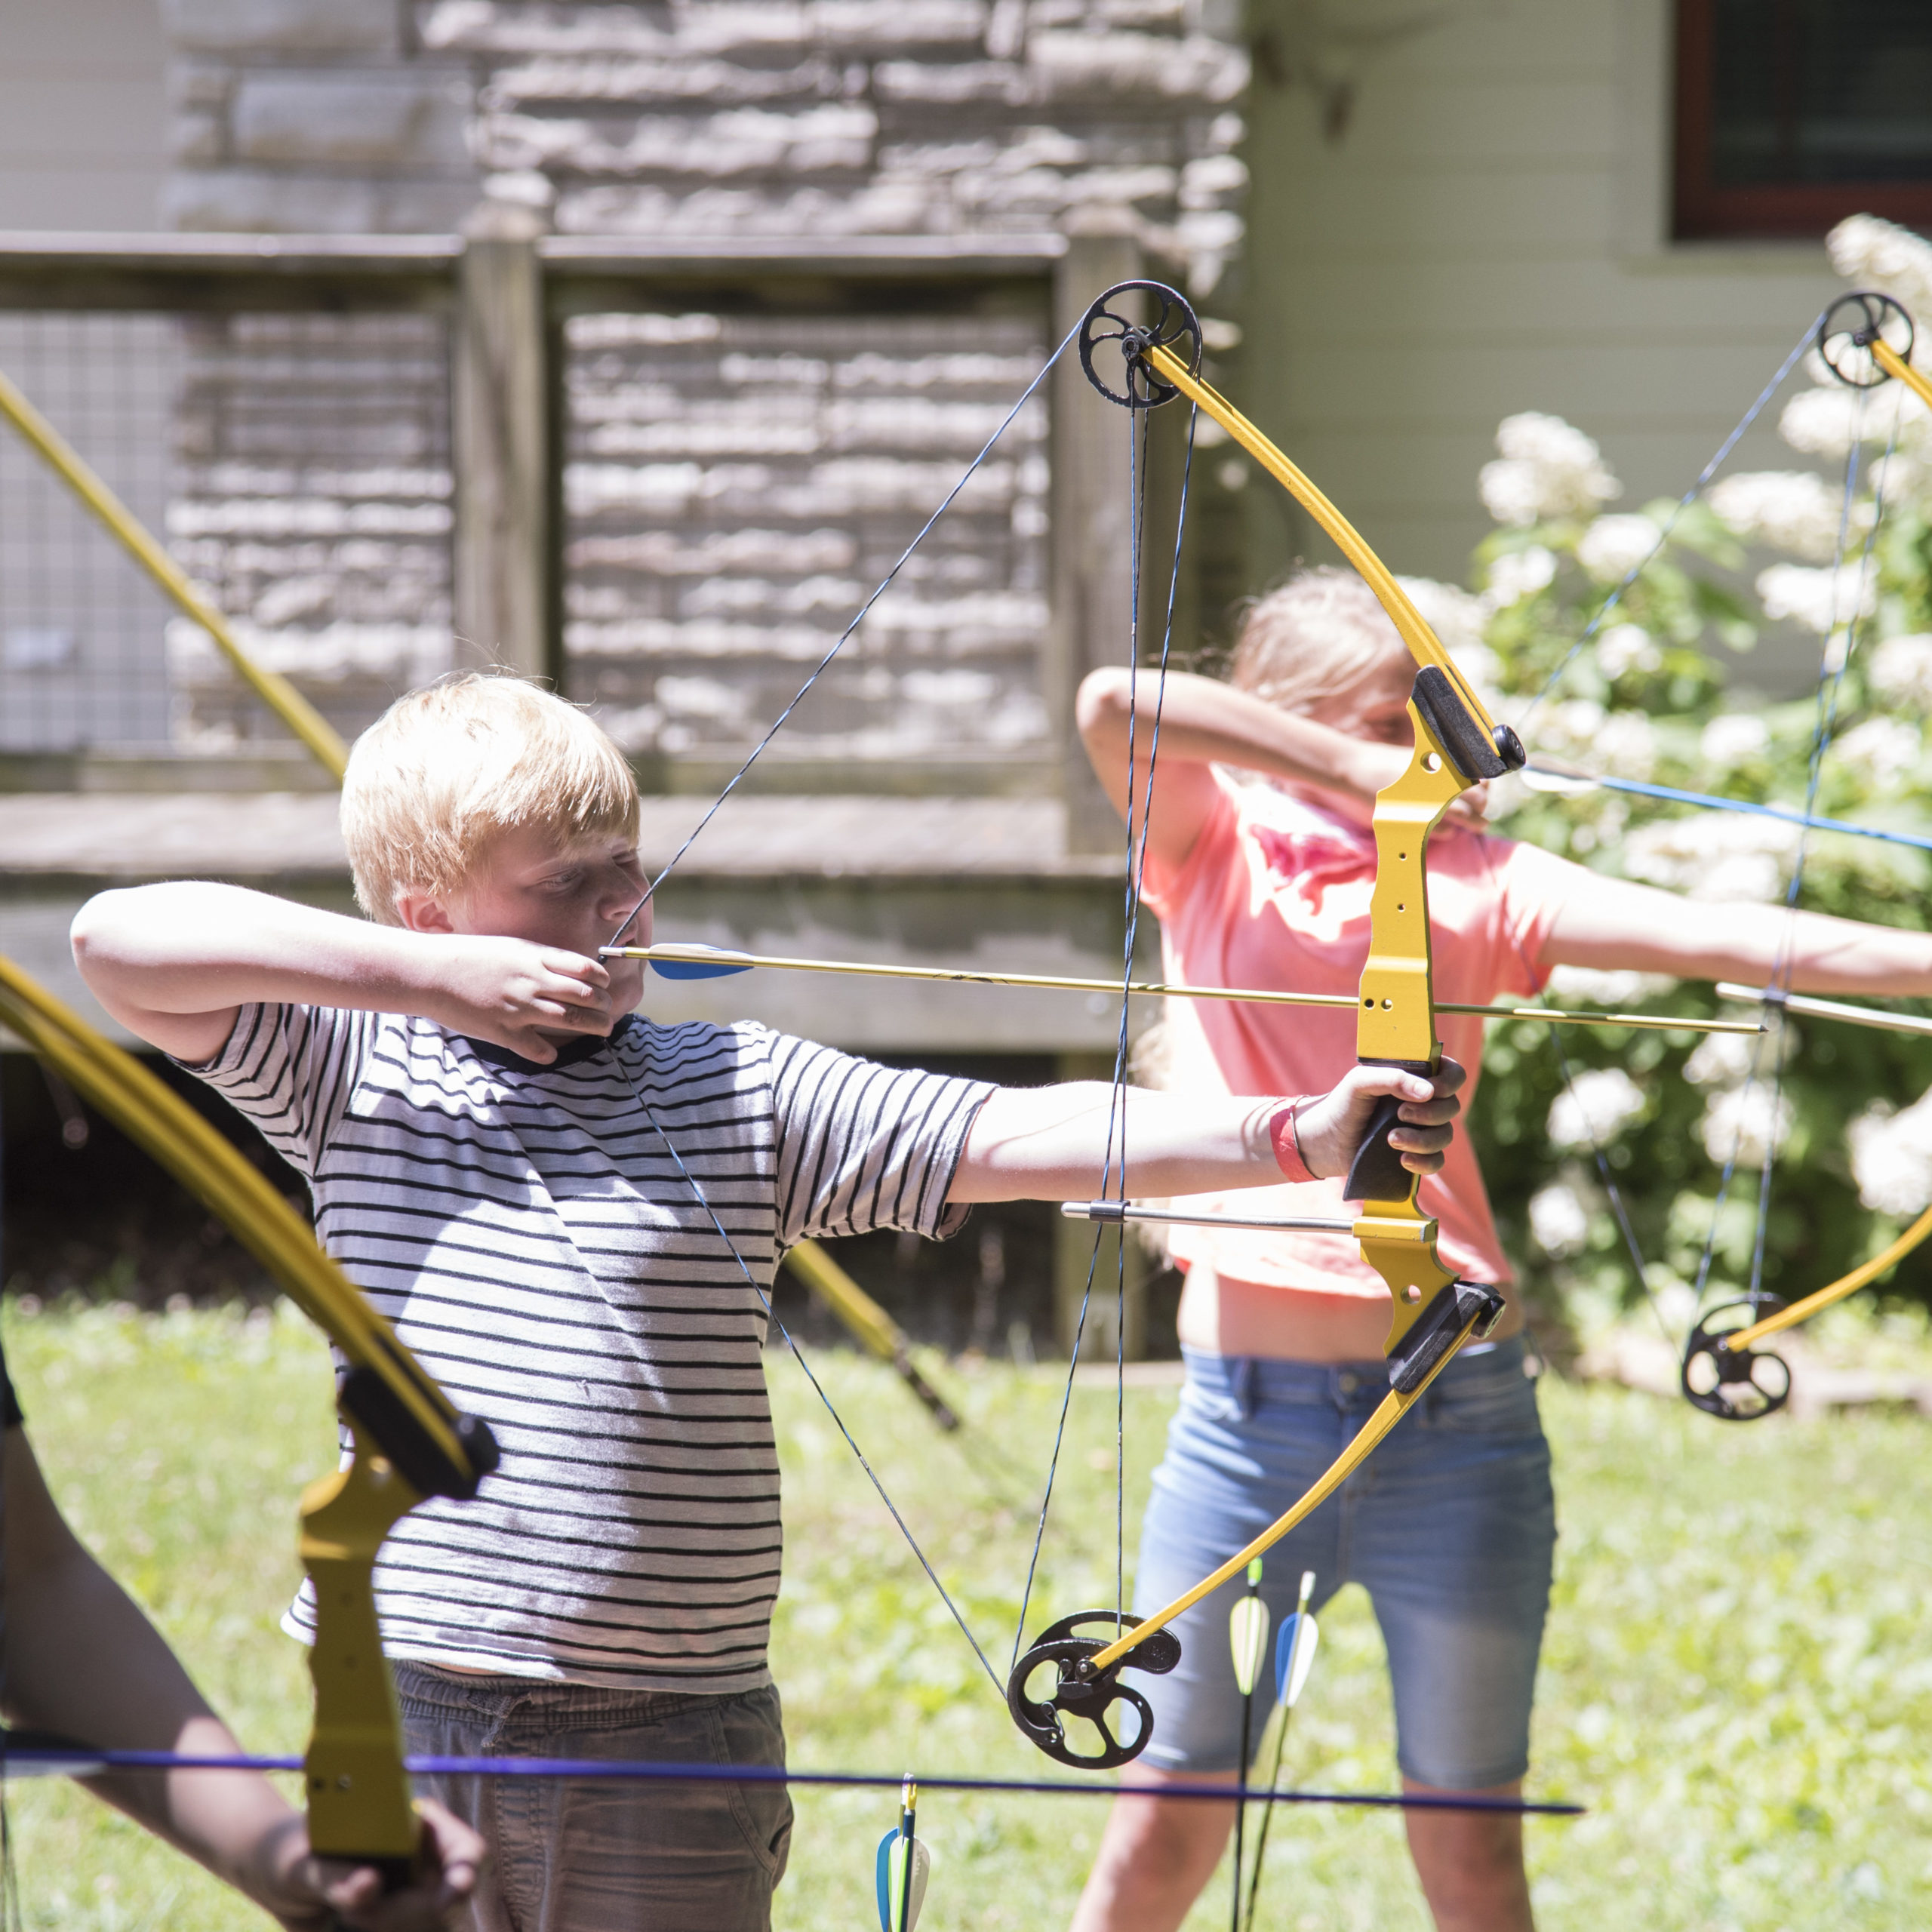 Archery at Clyde M York 4-H Camp